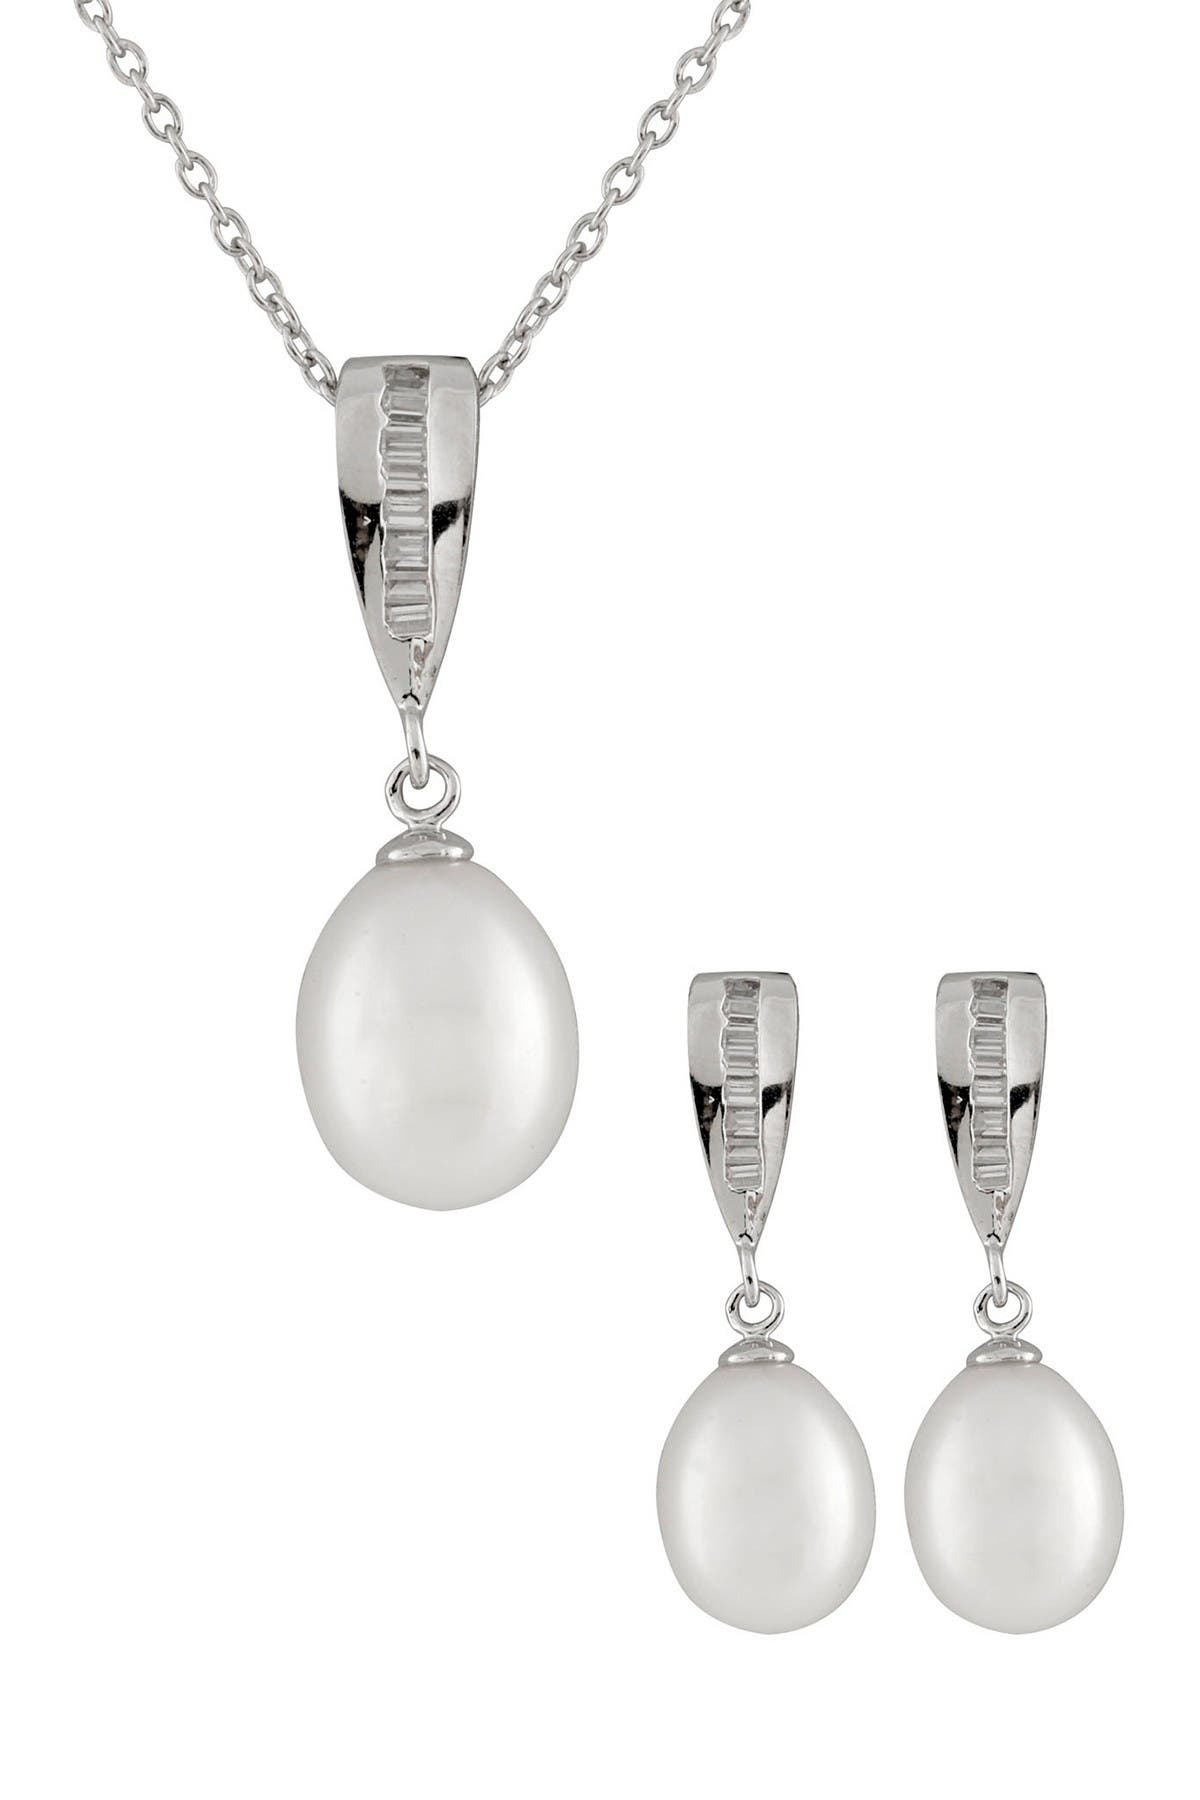 Image of Splendid Pearls 7-8mm White Freshwater Pearl & Channel Set Baguette Pendant Necklace & Earrings Set